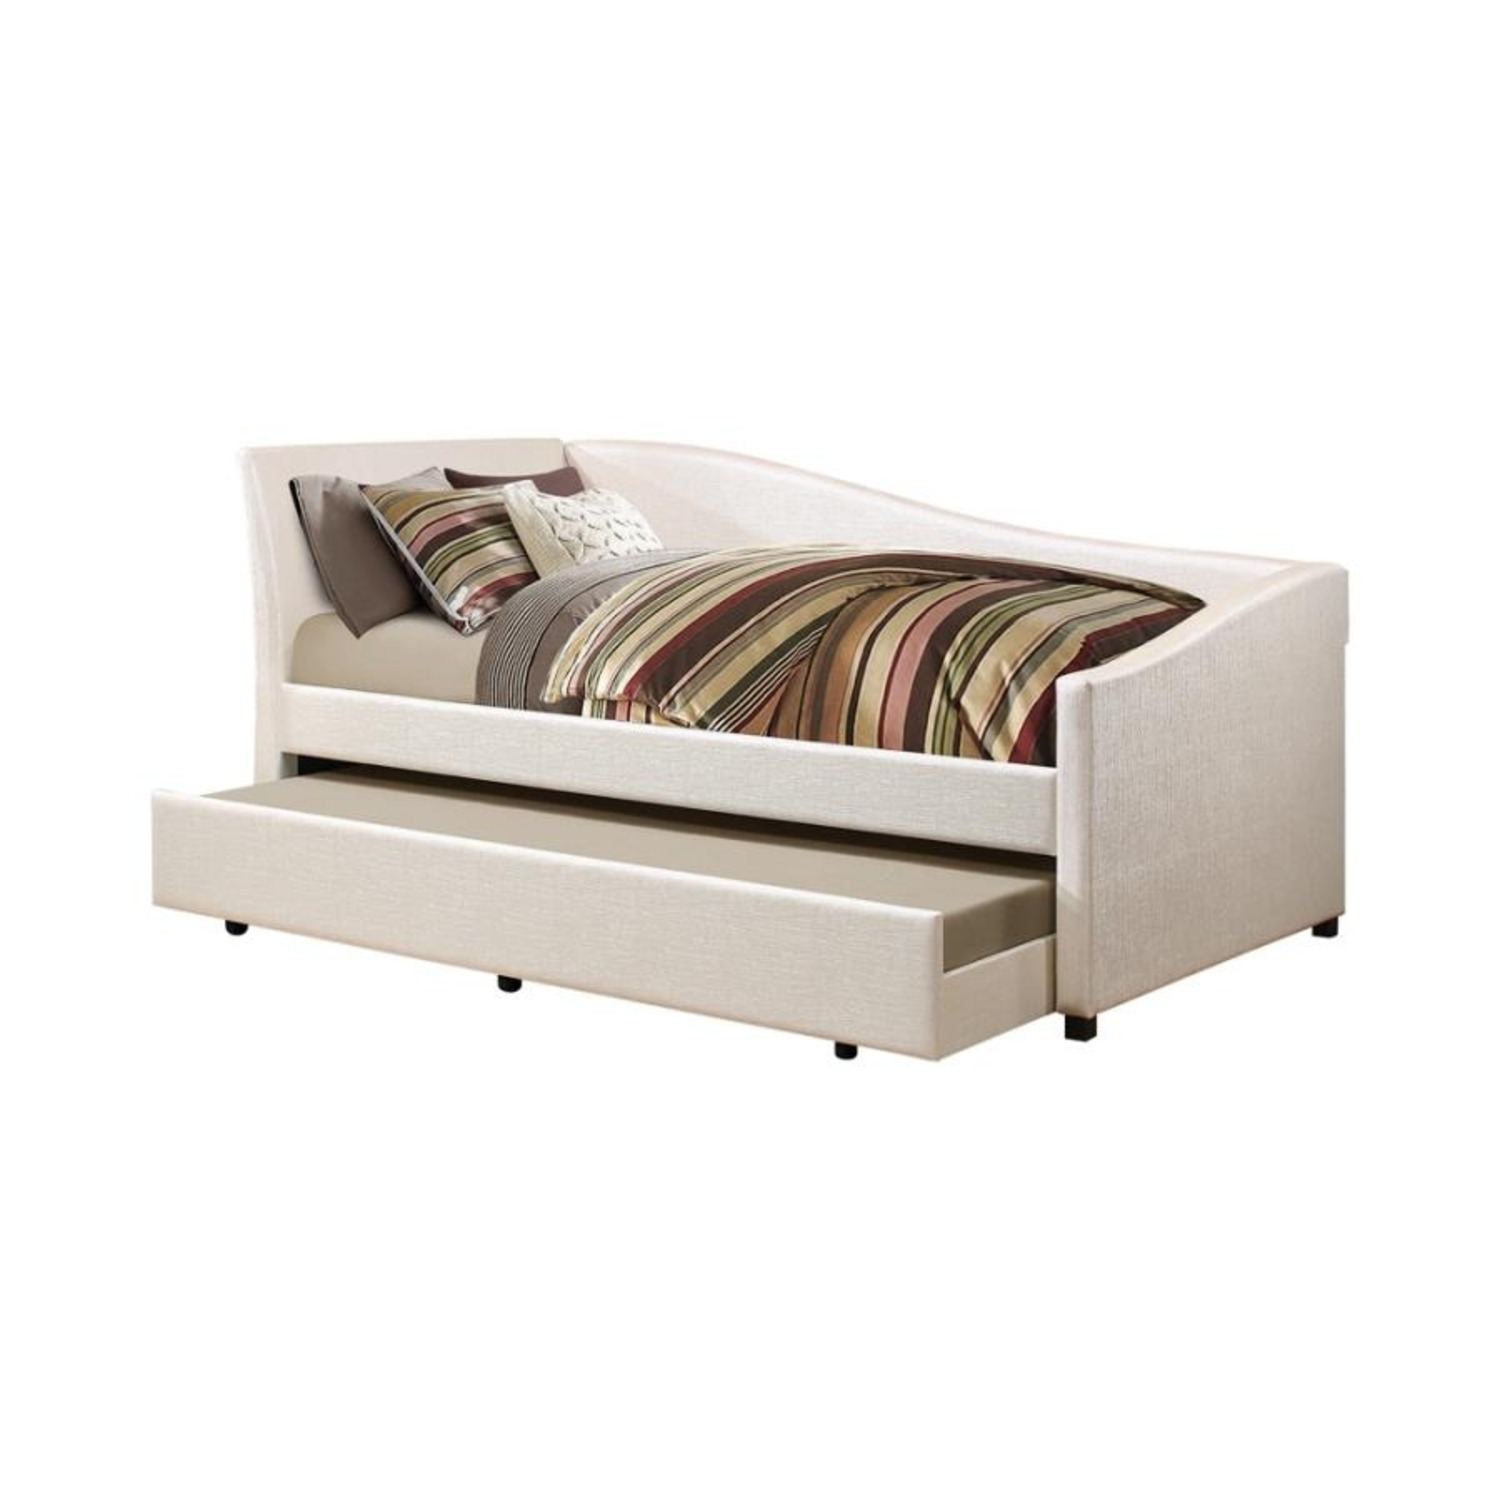 Twin Daybed In Ivory Leatherette W Trundle - image-1